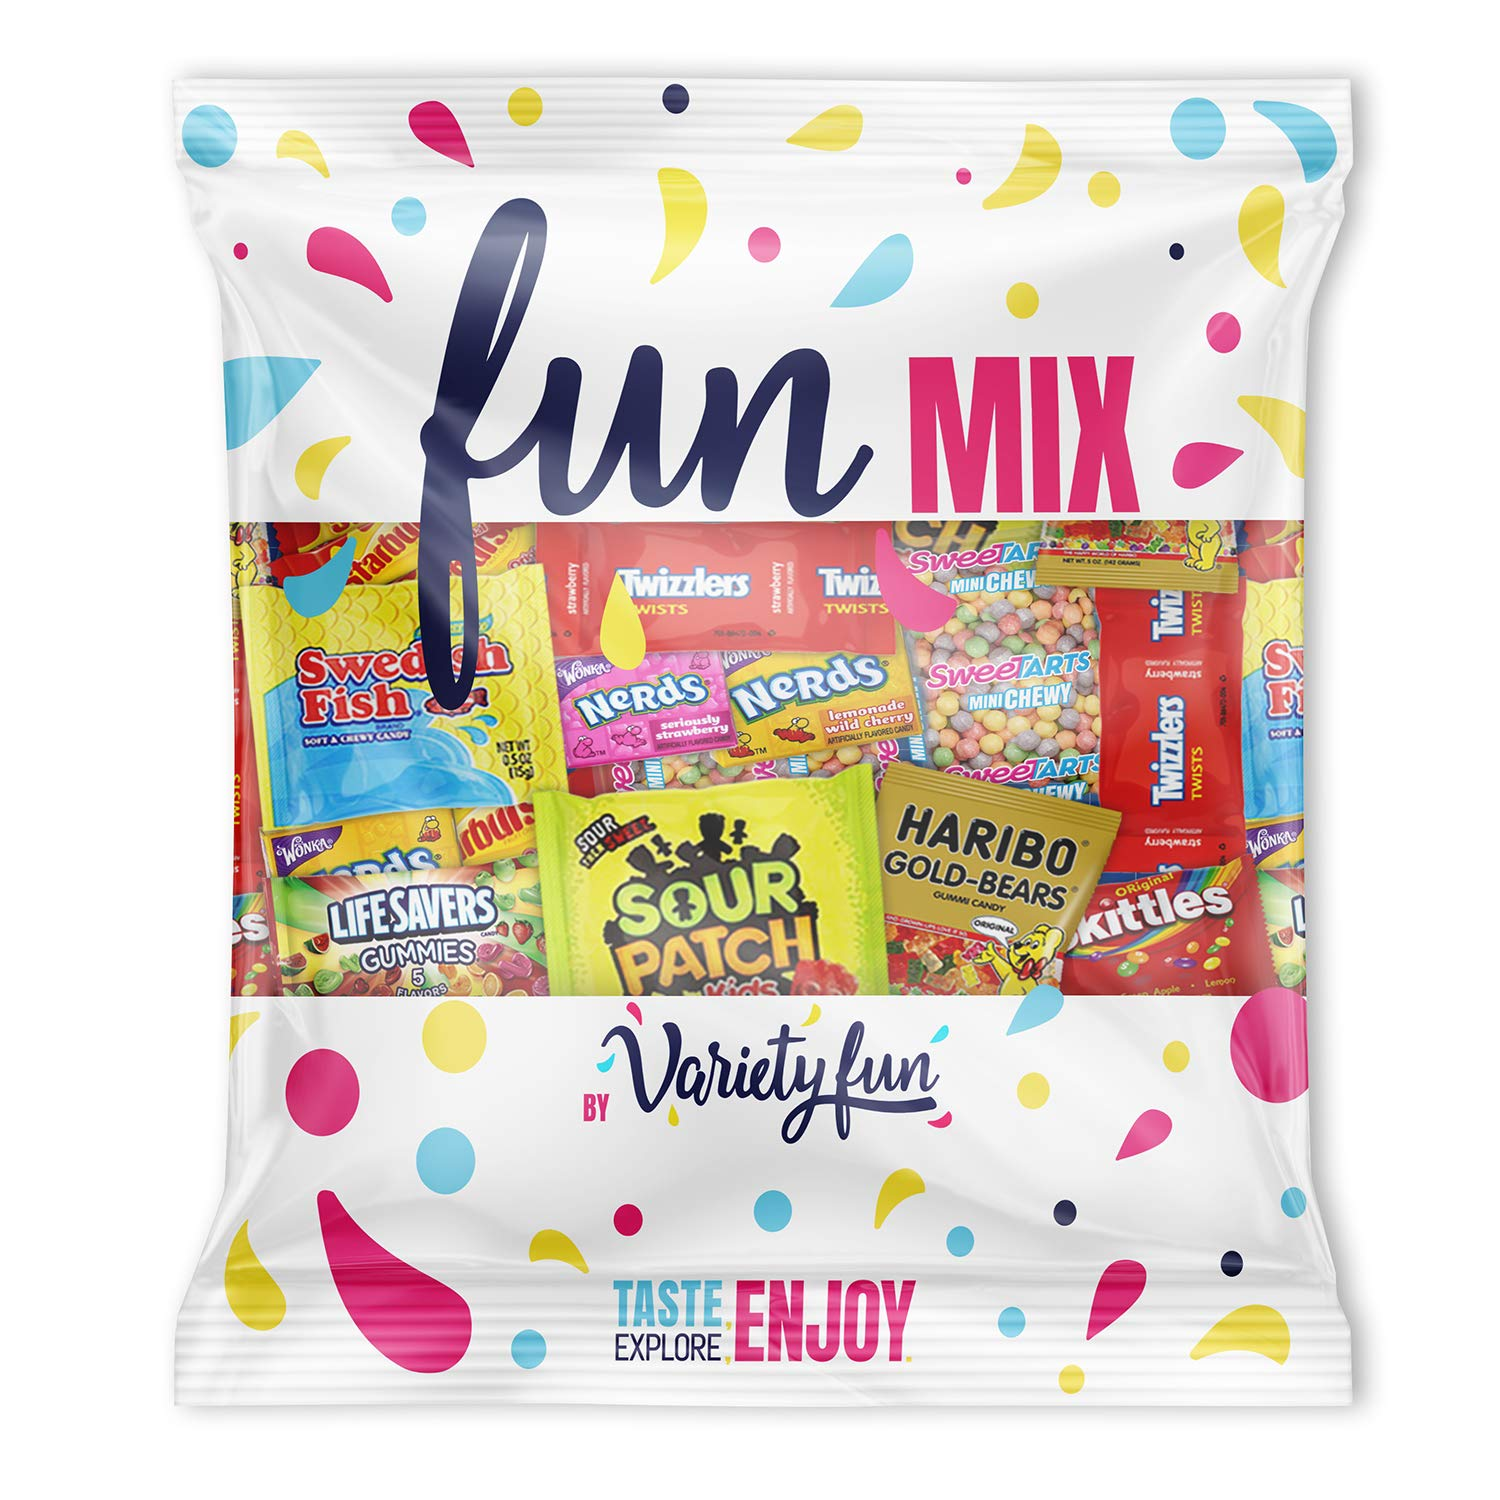 Candy Party Mix Bulk Bag of Skittles Swedish Fish Nerds Haribo Gummy Sour Patch Twizzlers Starburst Mike and Ike and more! by Variety Fun Net wt (48 oz) by Custom Varietea (Image #4)